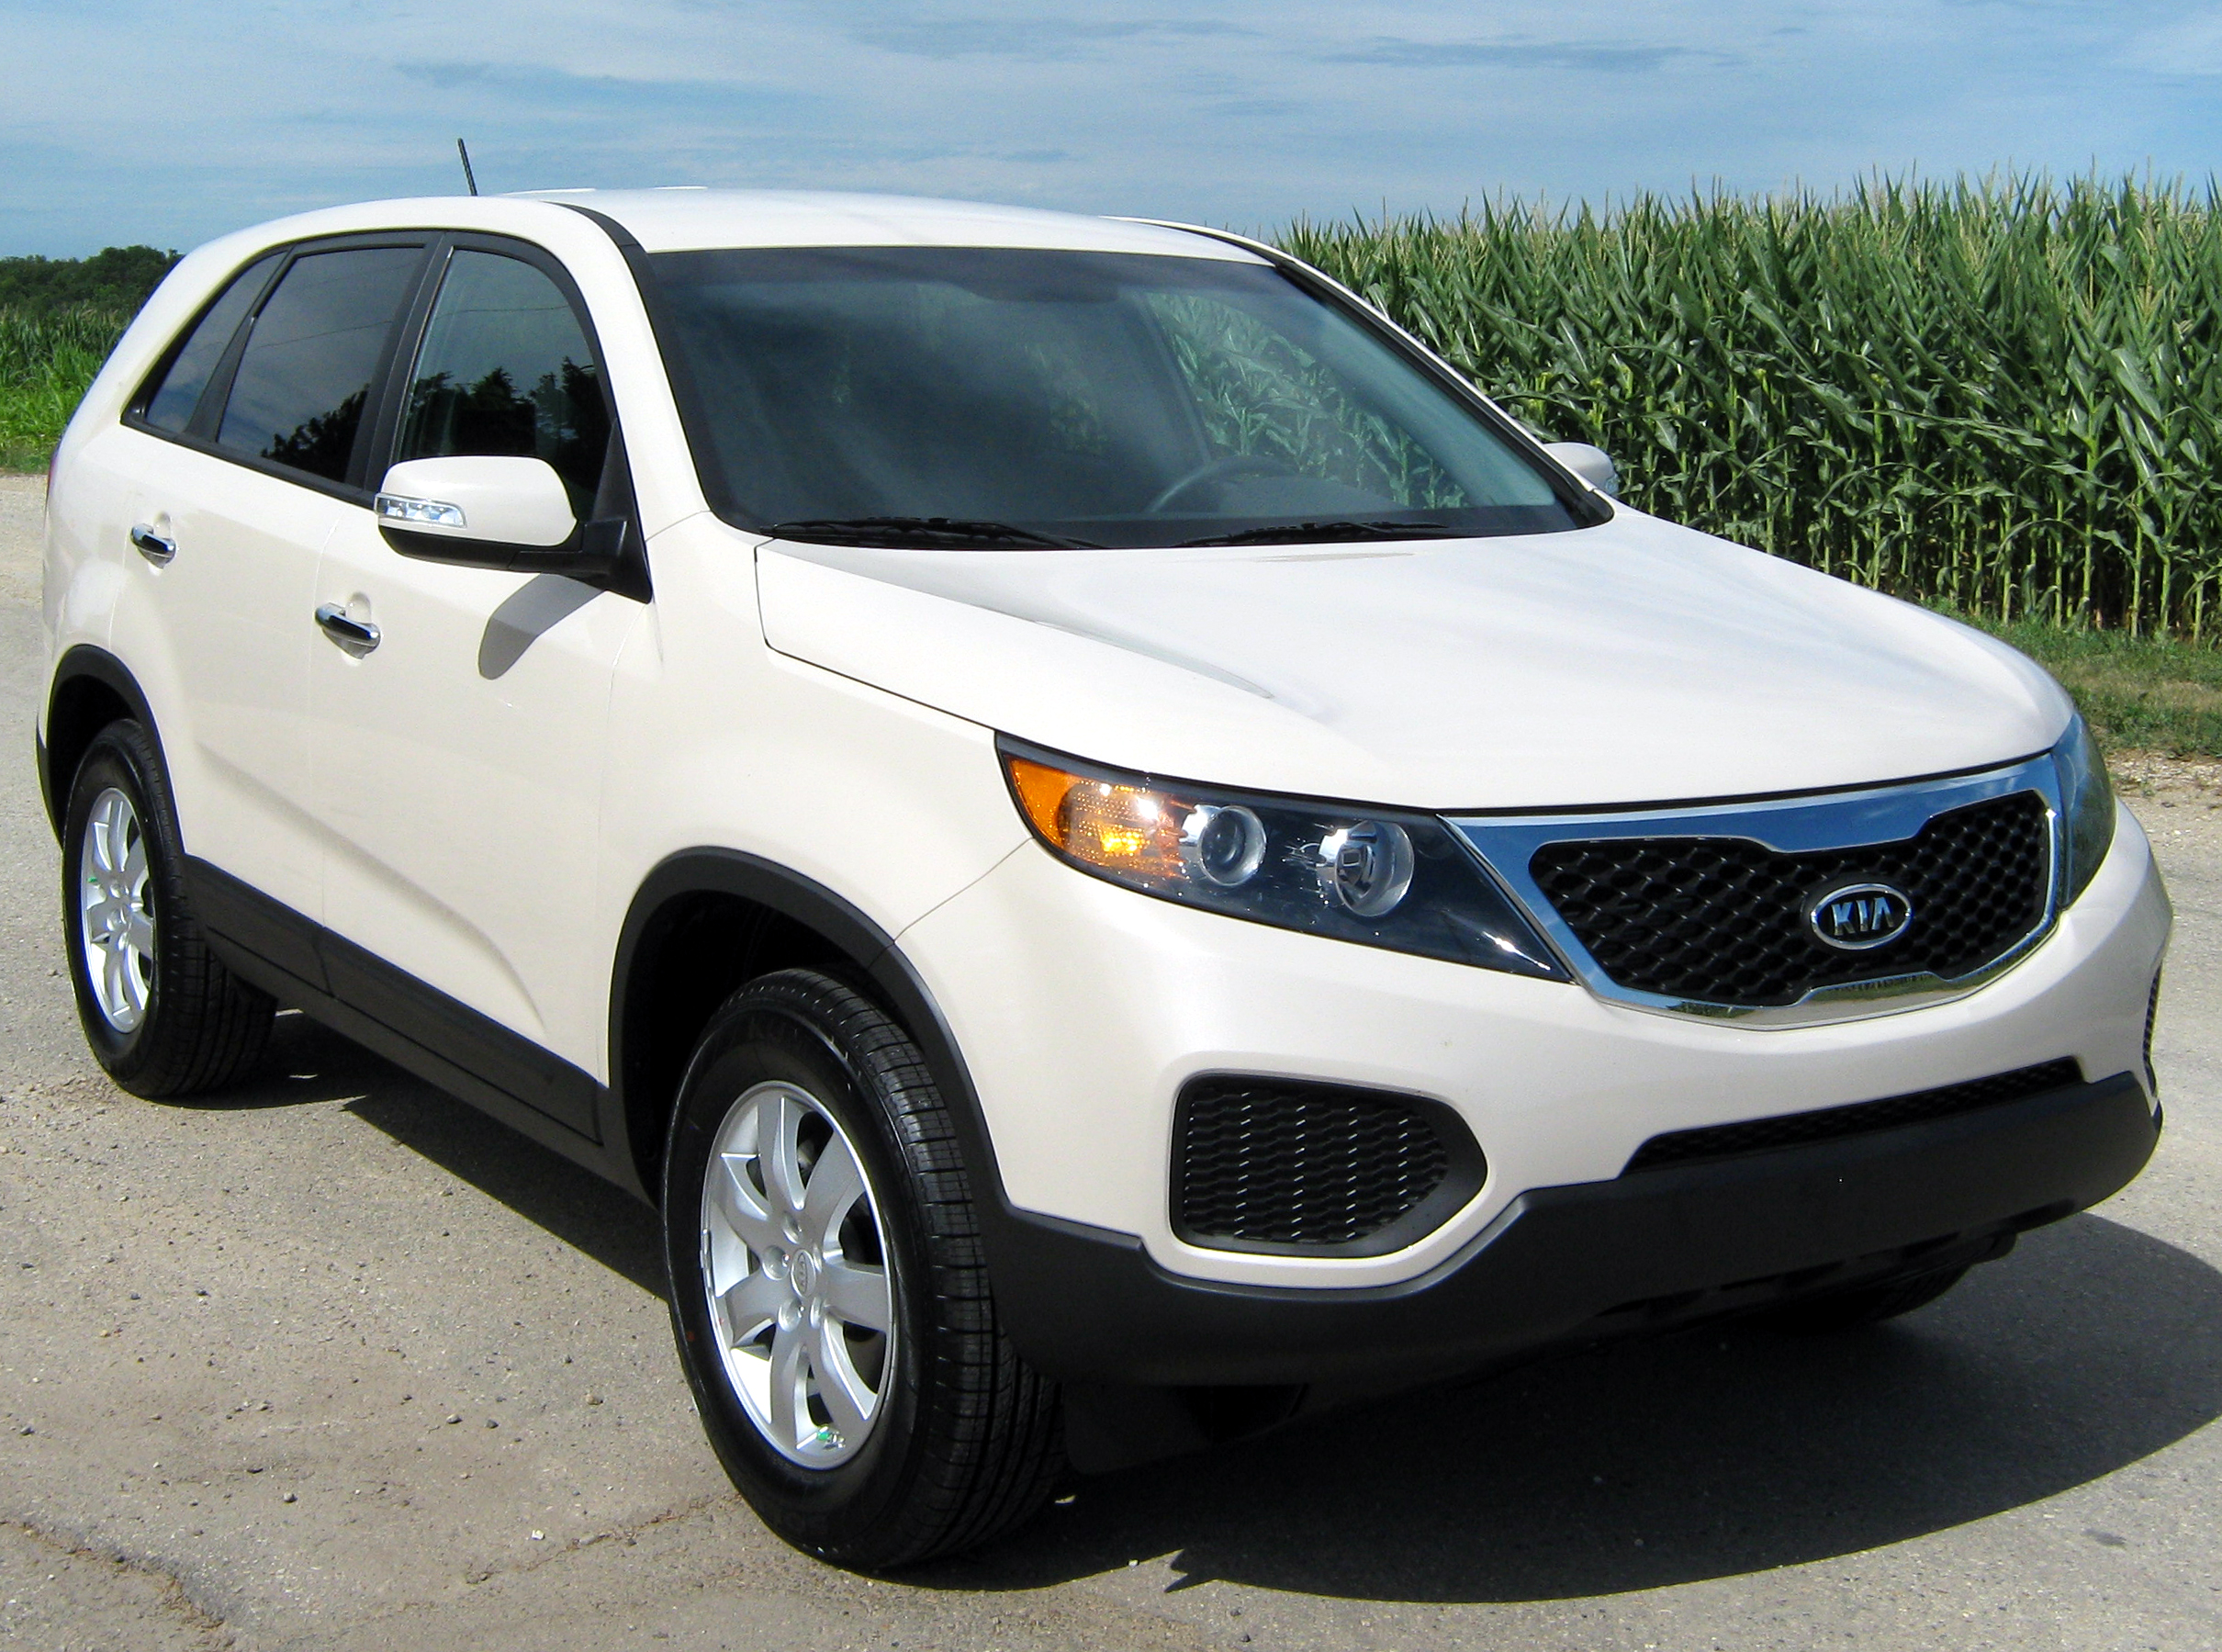 raleigh sorento carfinder online auto title ended copart en certificate kia auction on in salvage ba nc vin lot of auctions